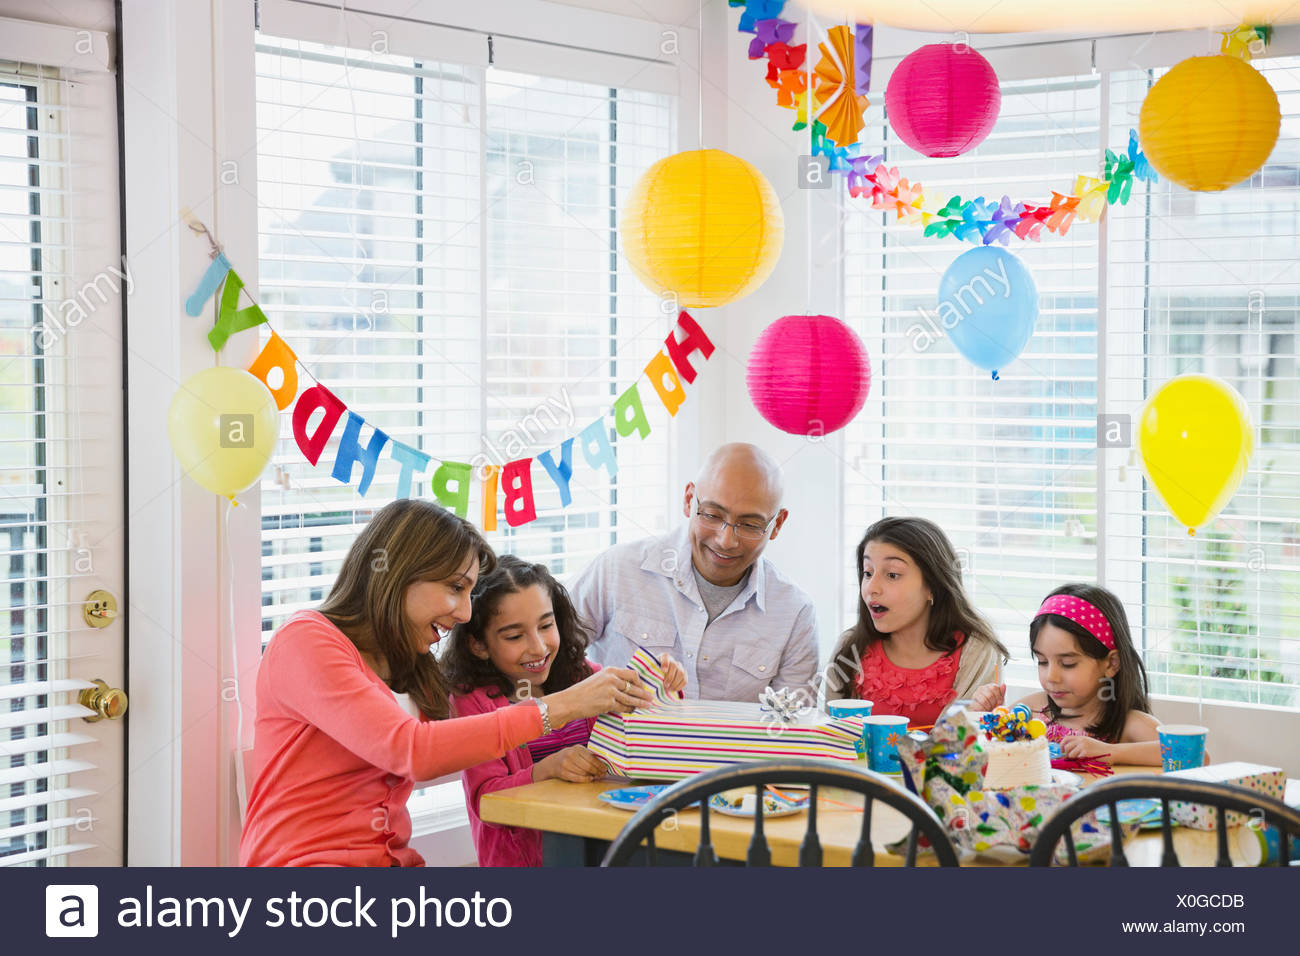 Little girl and mother opening gift as family watches - Stock Image